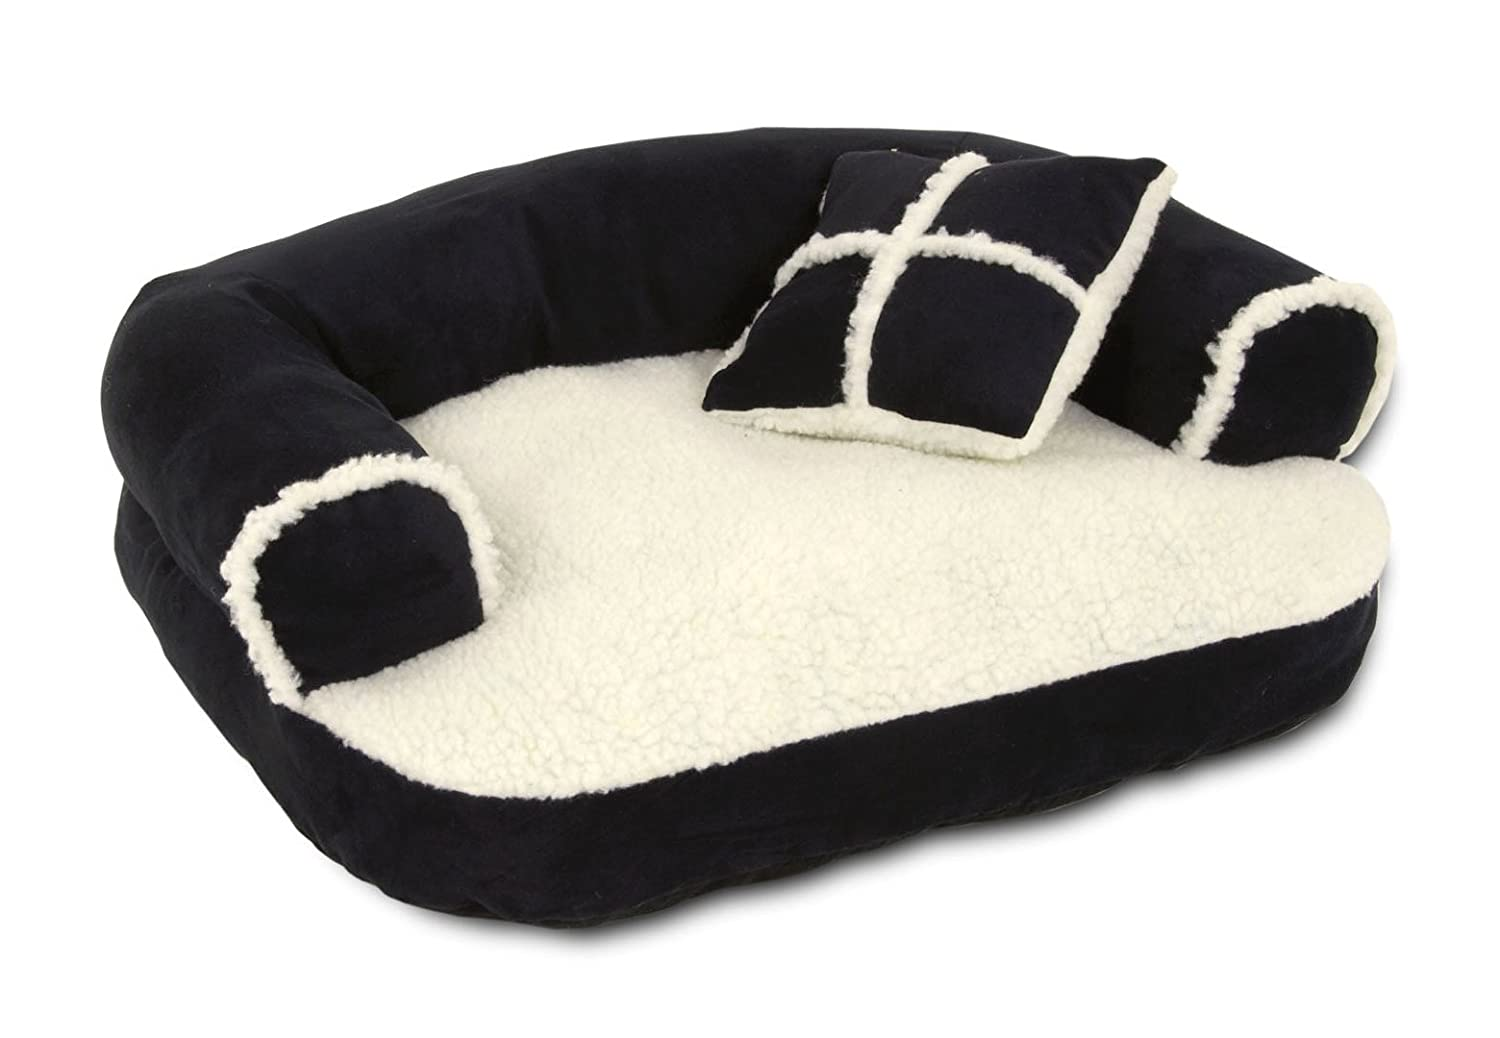 Amazon.com : Petmate Aspen Pet Sofa Bed With Pillow, 20 X 16 ...